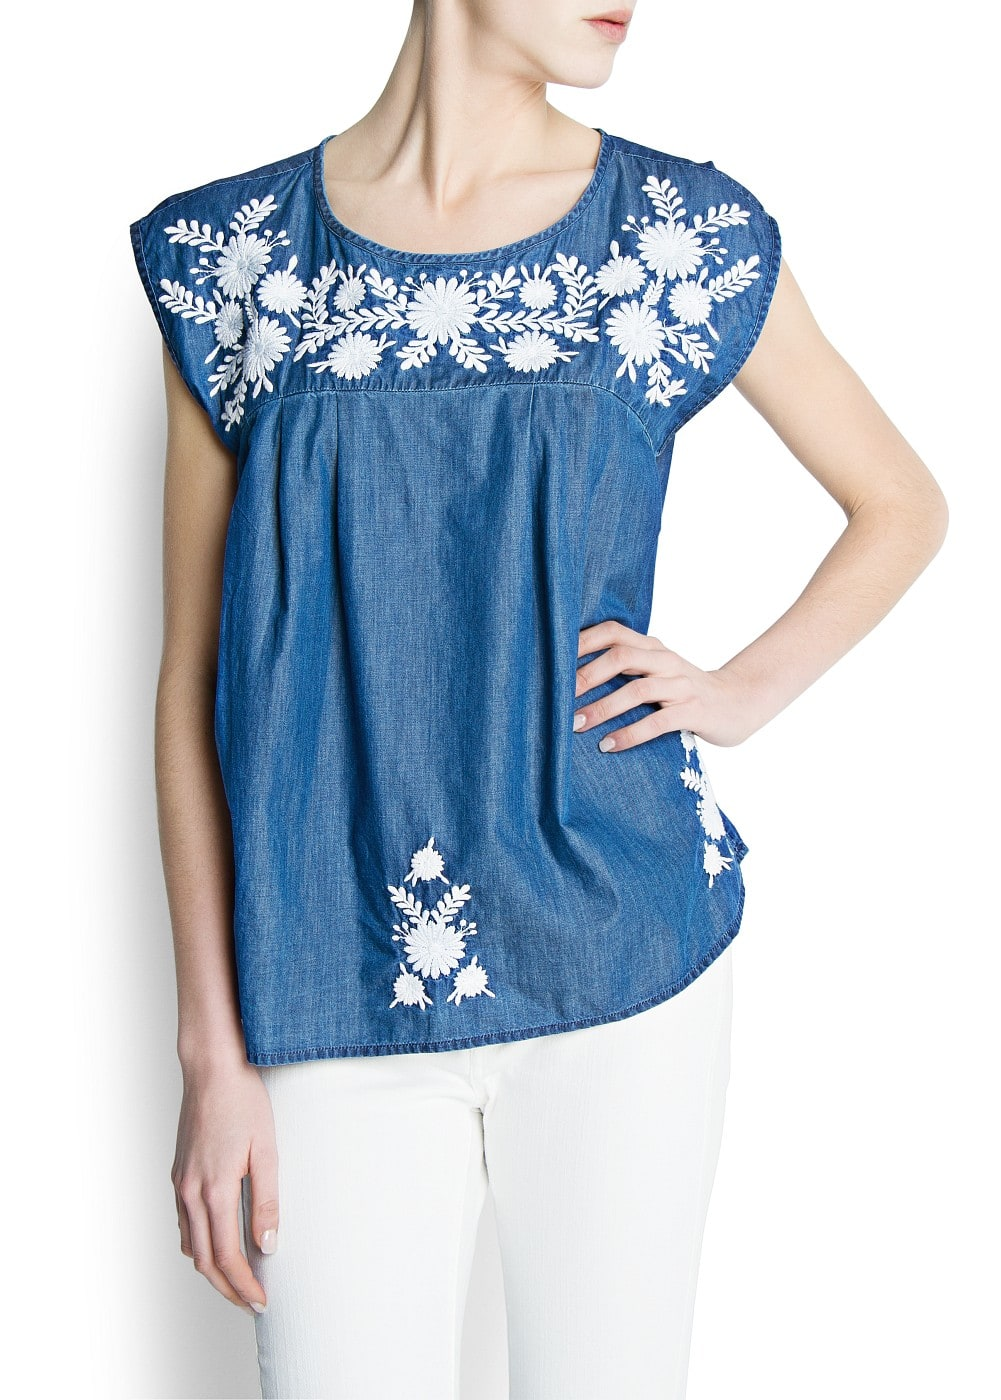 Embroidered flowers denim blouse